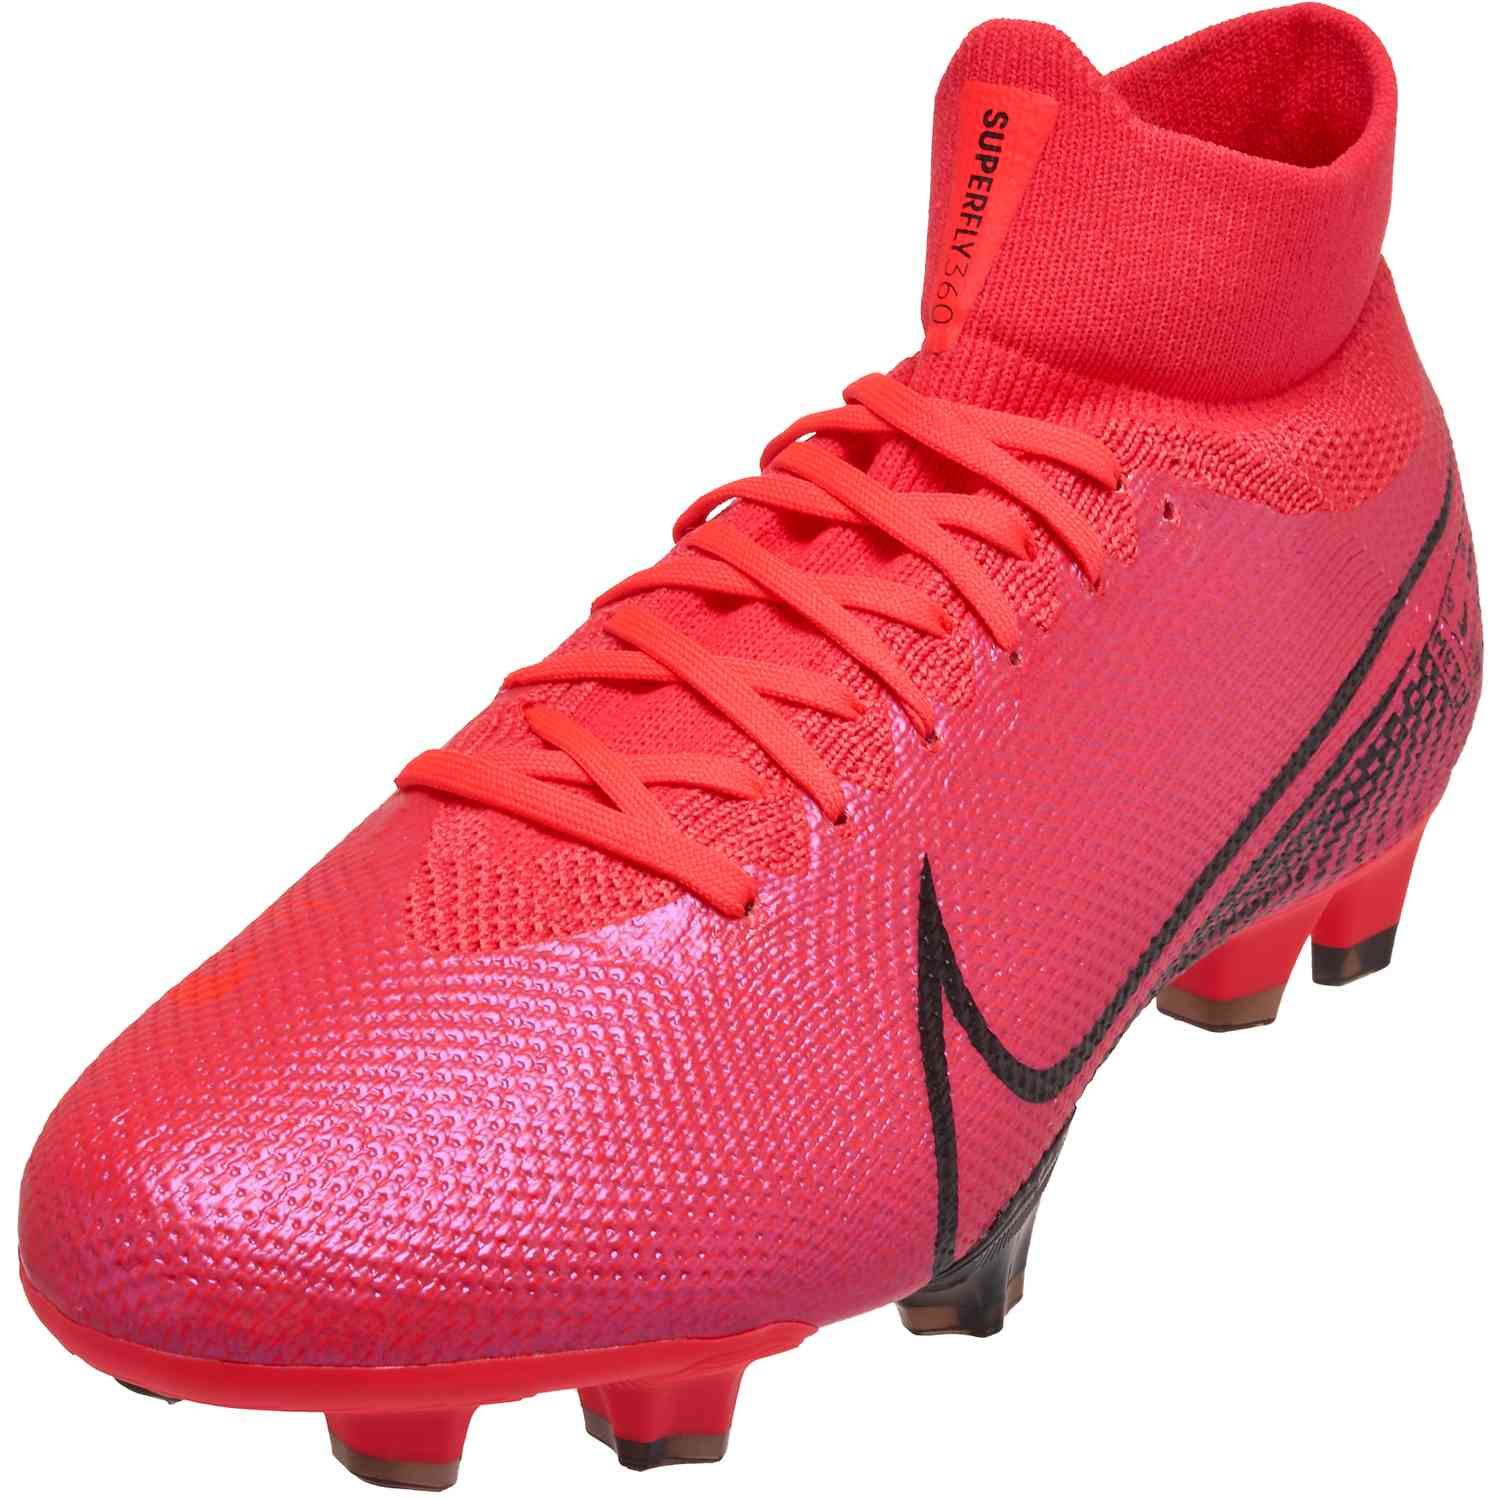 Nike Mercurial Superfly 7 Pro Fg Future Lab Soccerpro In 2020 Superfly Soccer Cleats Soccer Shoes Soccer Cleats